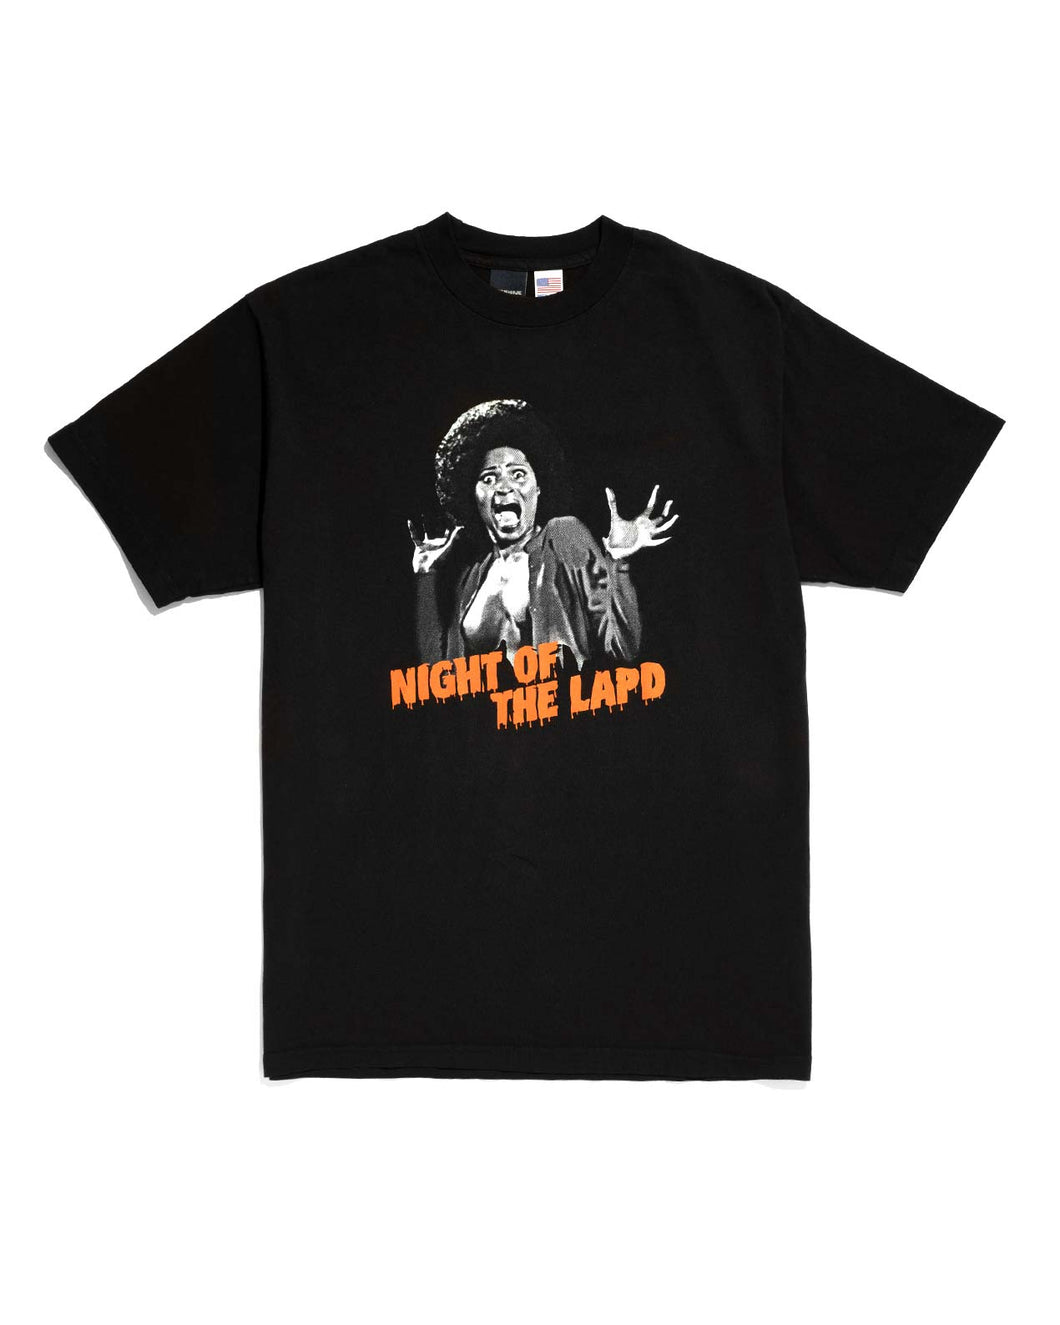 Night of the LAPD Tee Black